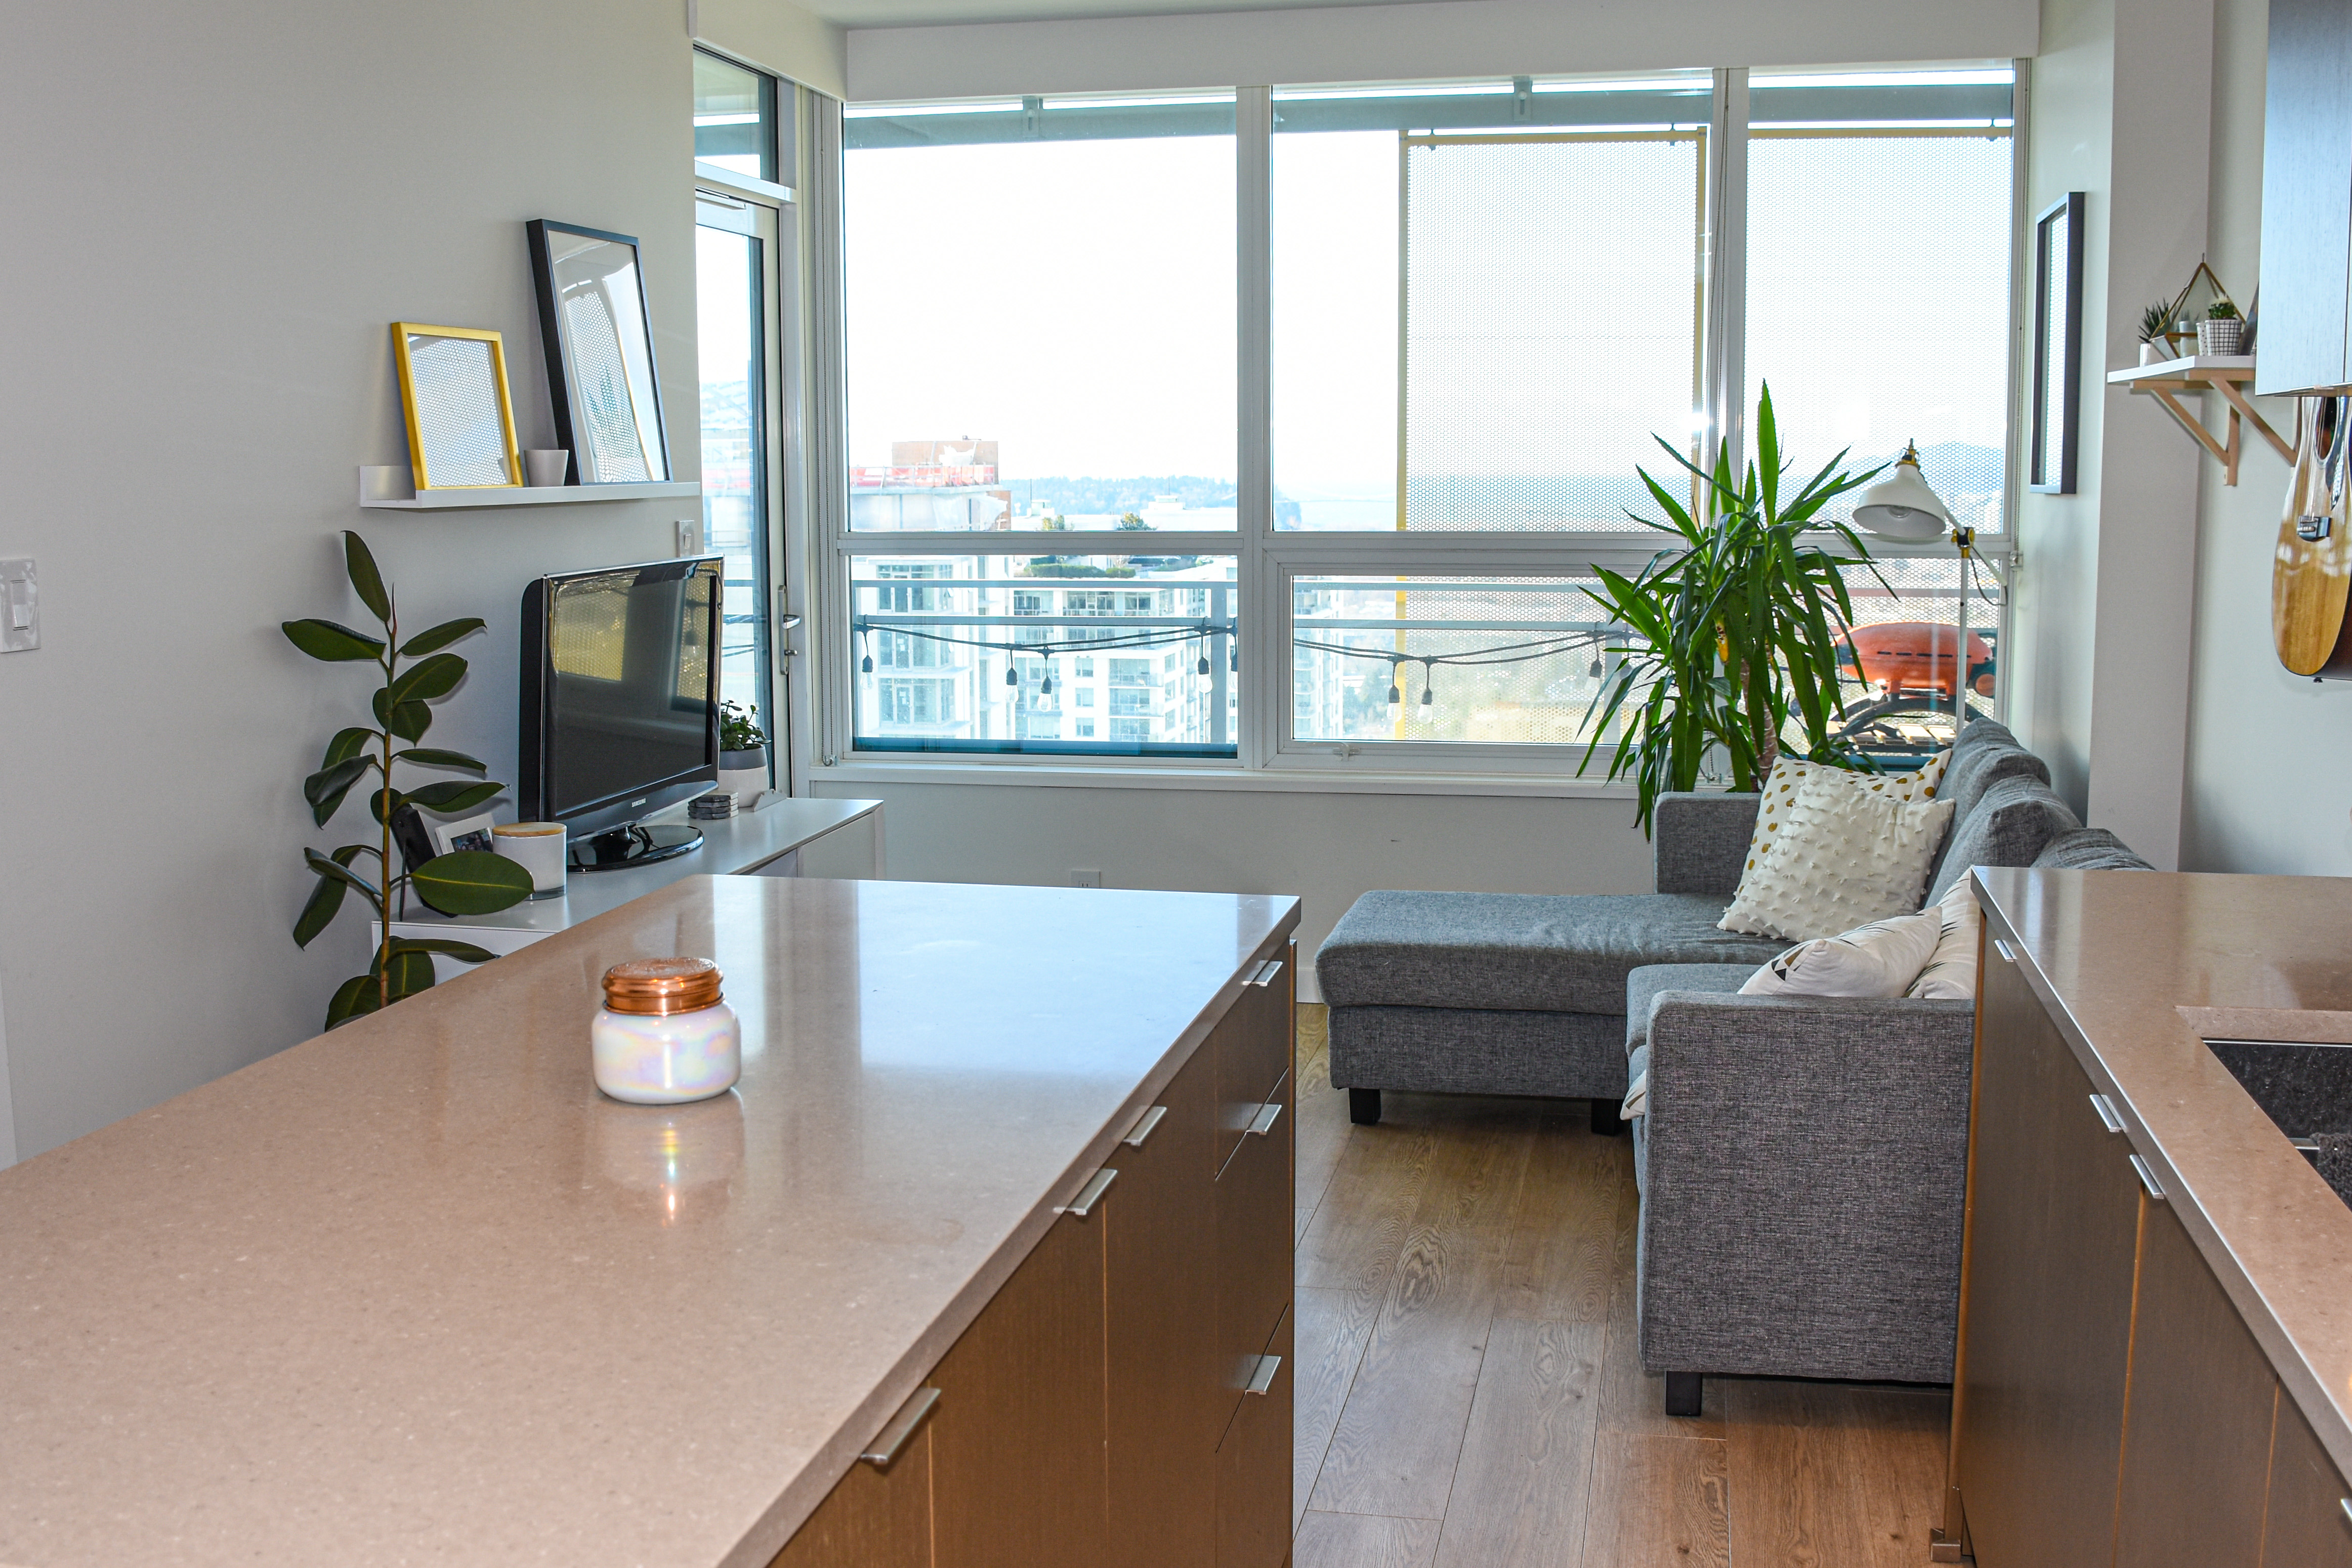 #1906 - 125 East 14th Street, North Vancouver, BC - $2,385